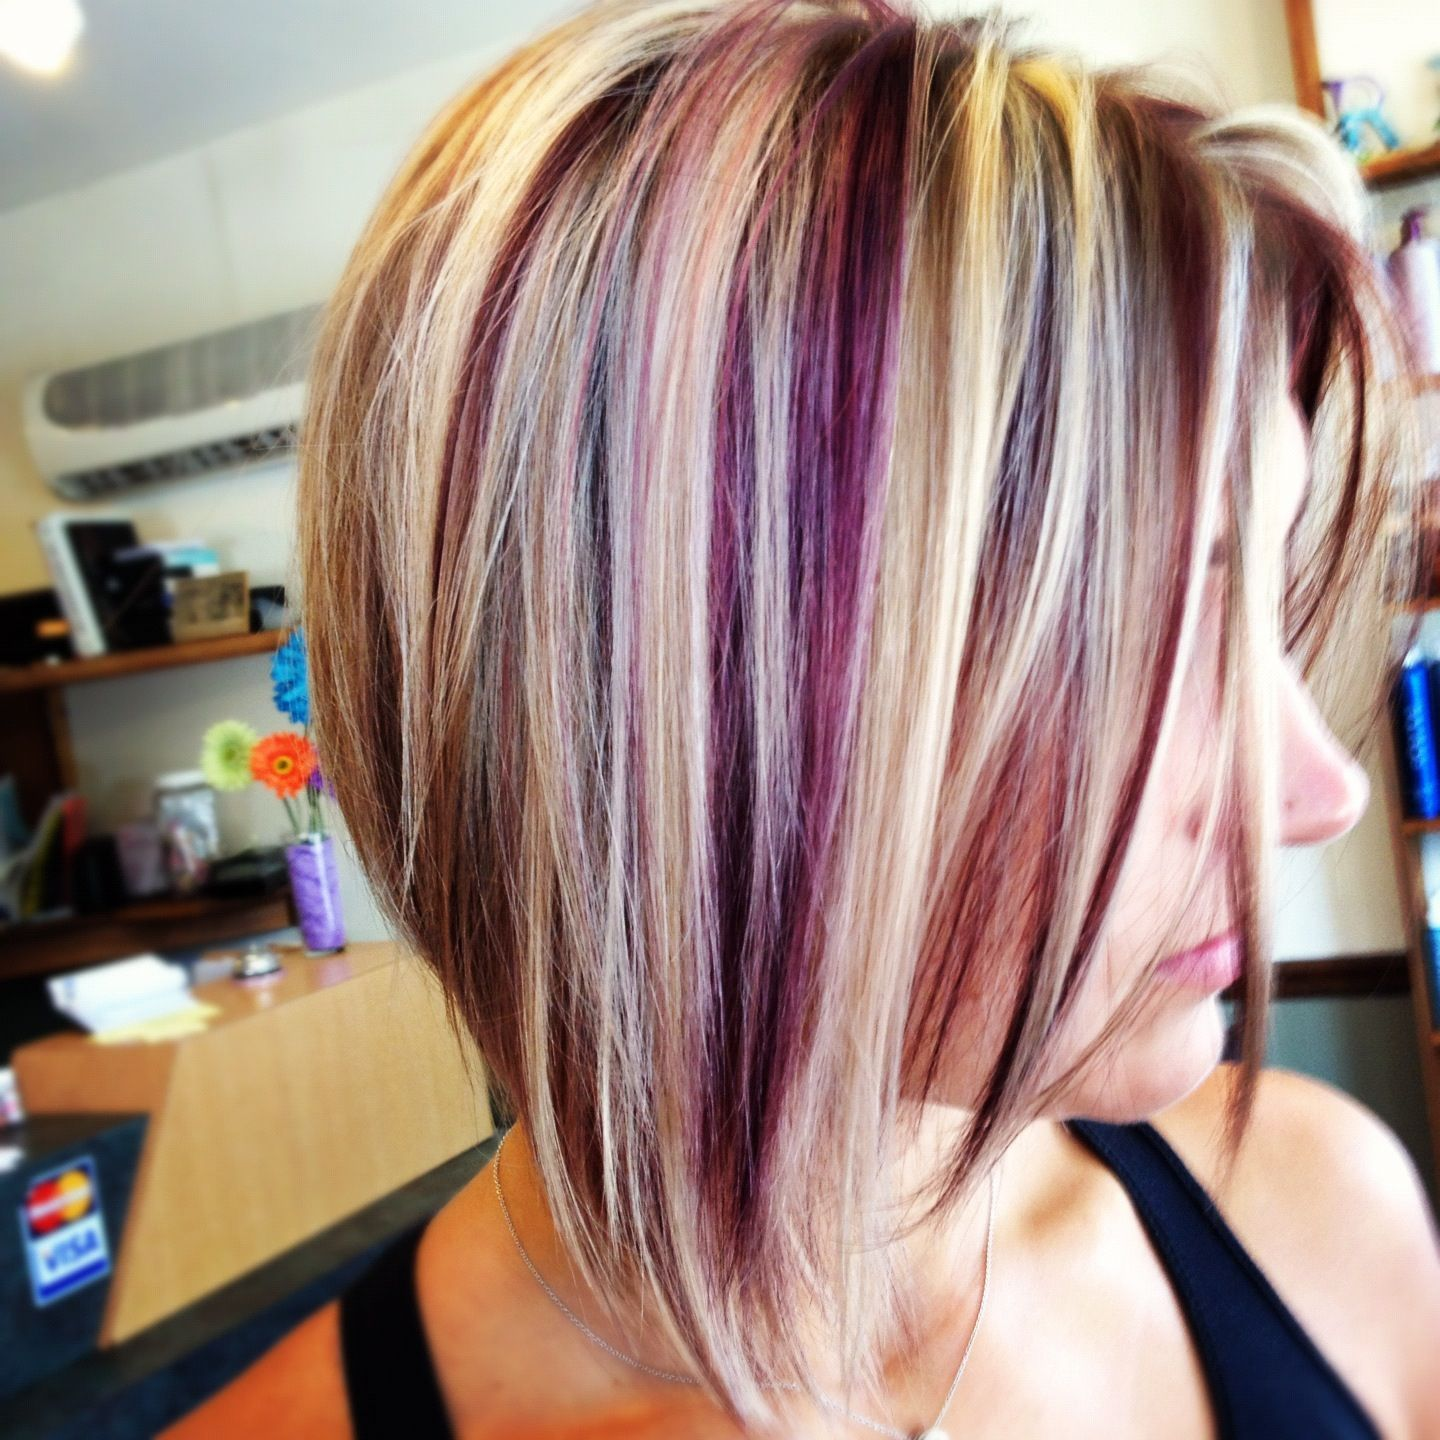 Fun Hair Color For The Fall Be Daring Funhaircolors Hairdye Colorfulhair Hair Hair Color Plum Hair Styles Short Hair Color